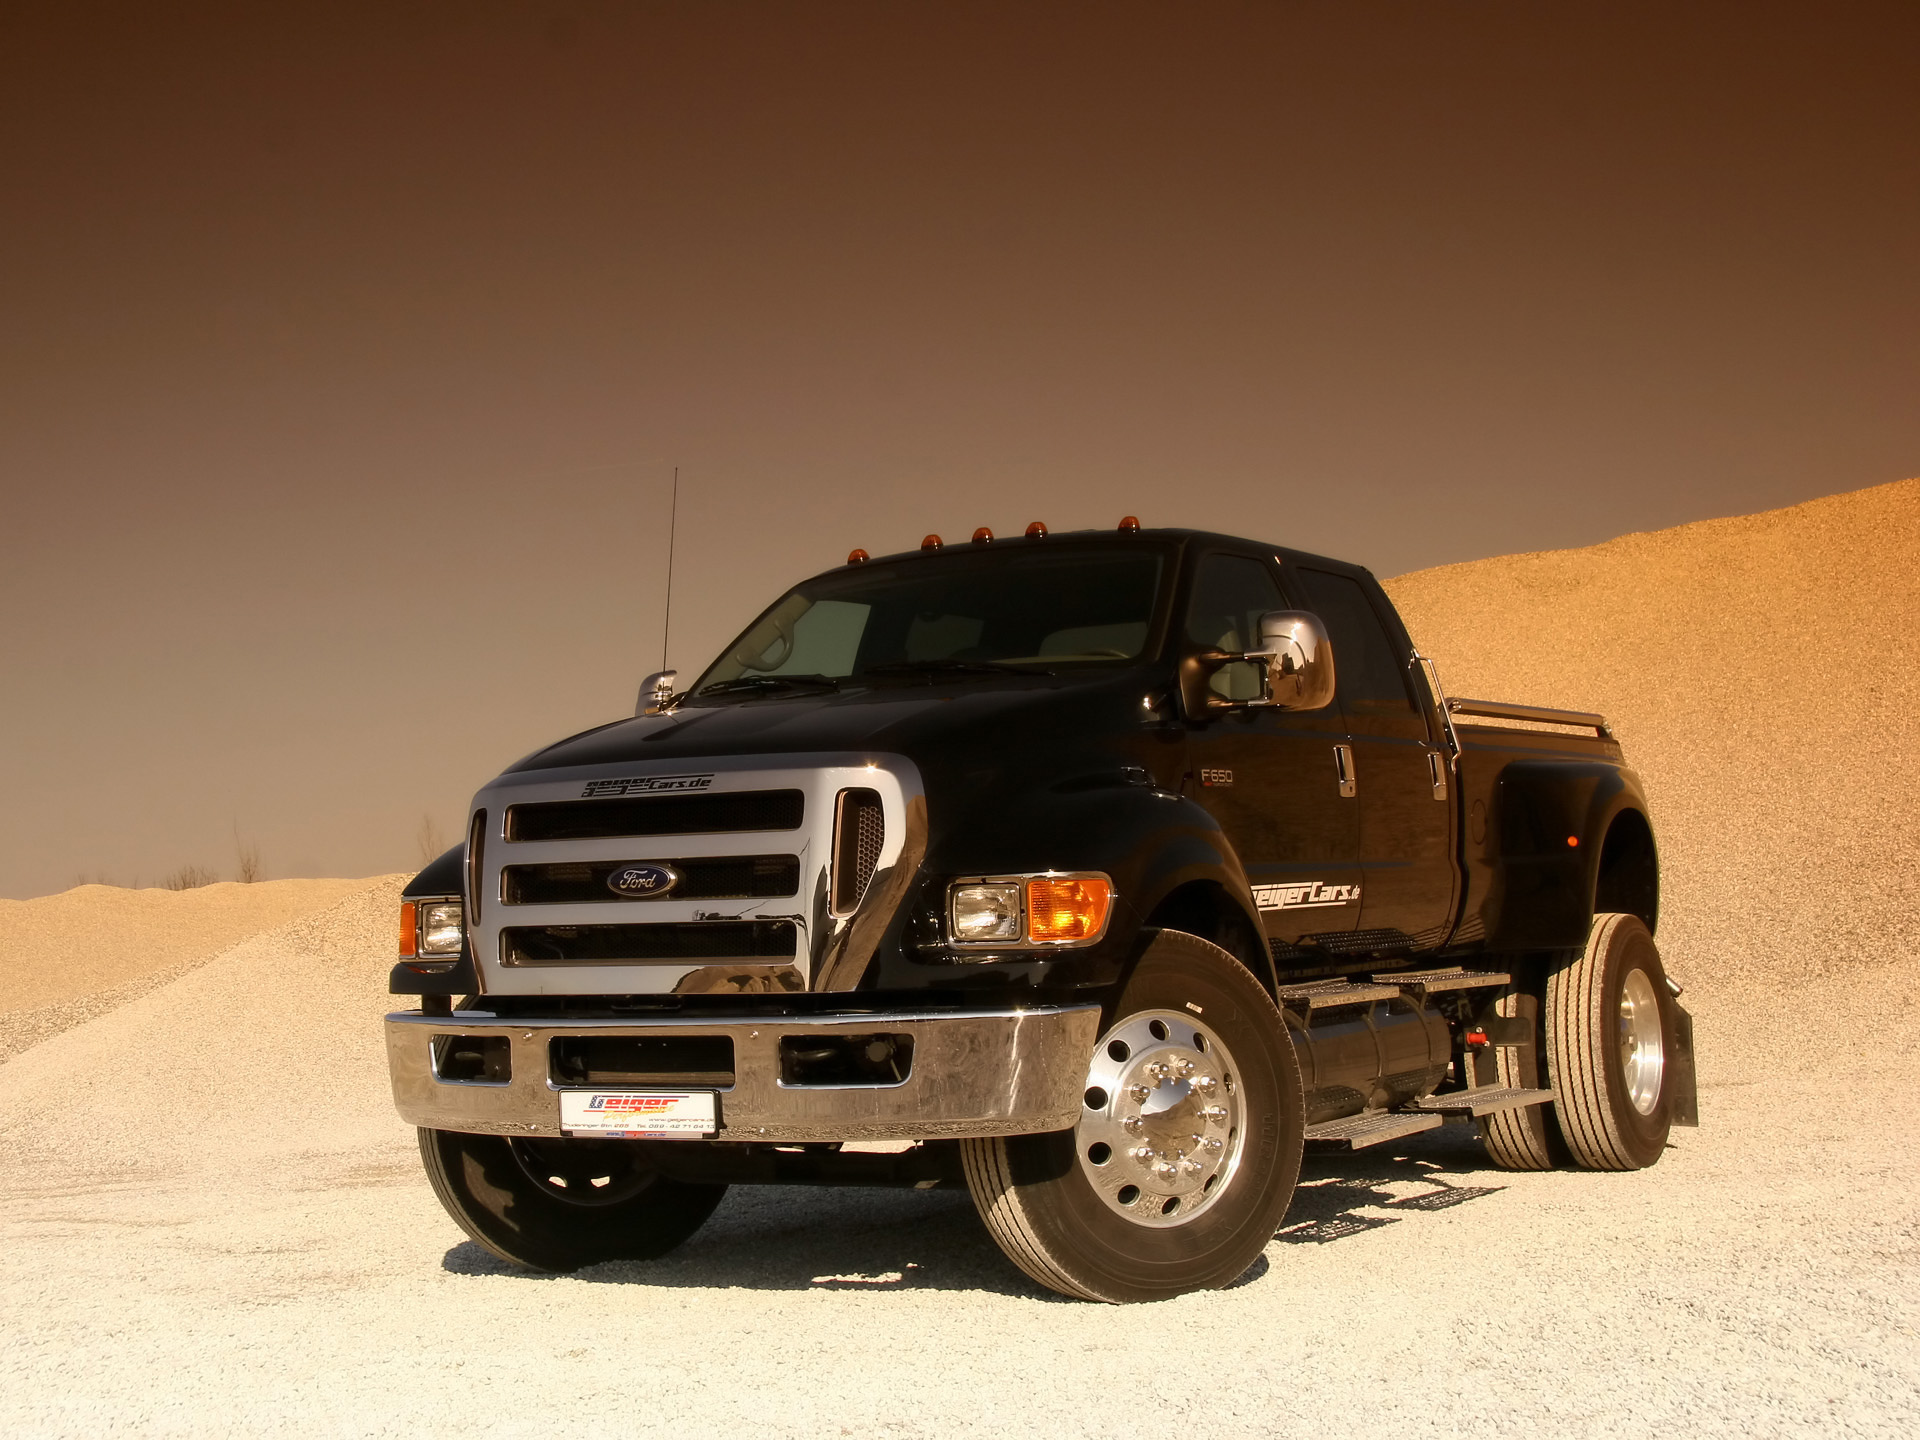 Geigercars Ford F-650 photo 54518